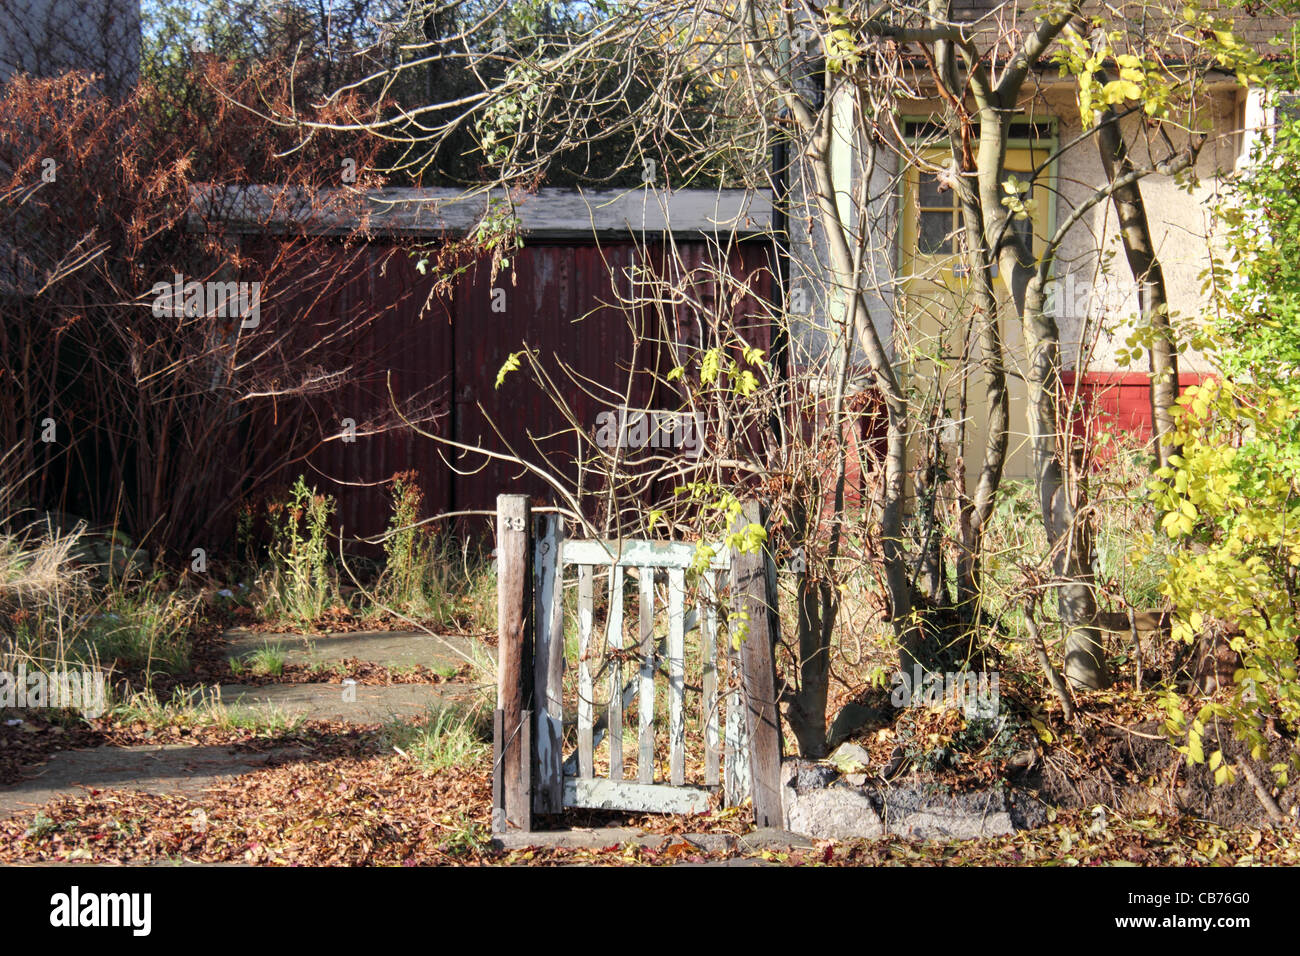 Suburban house unkempt and in a state of disrepair, Enfield, Middelsex. - Stock Image